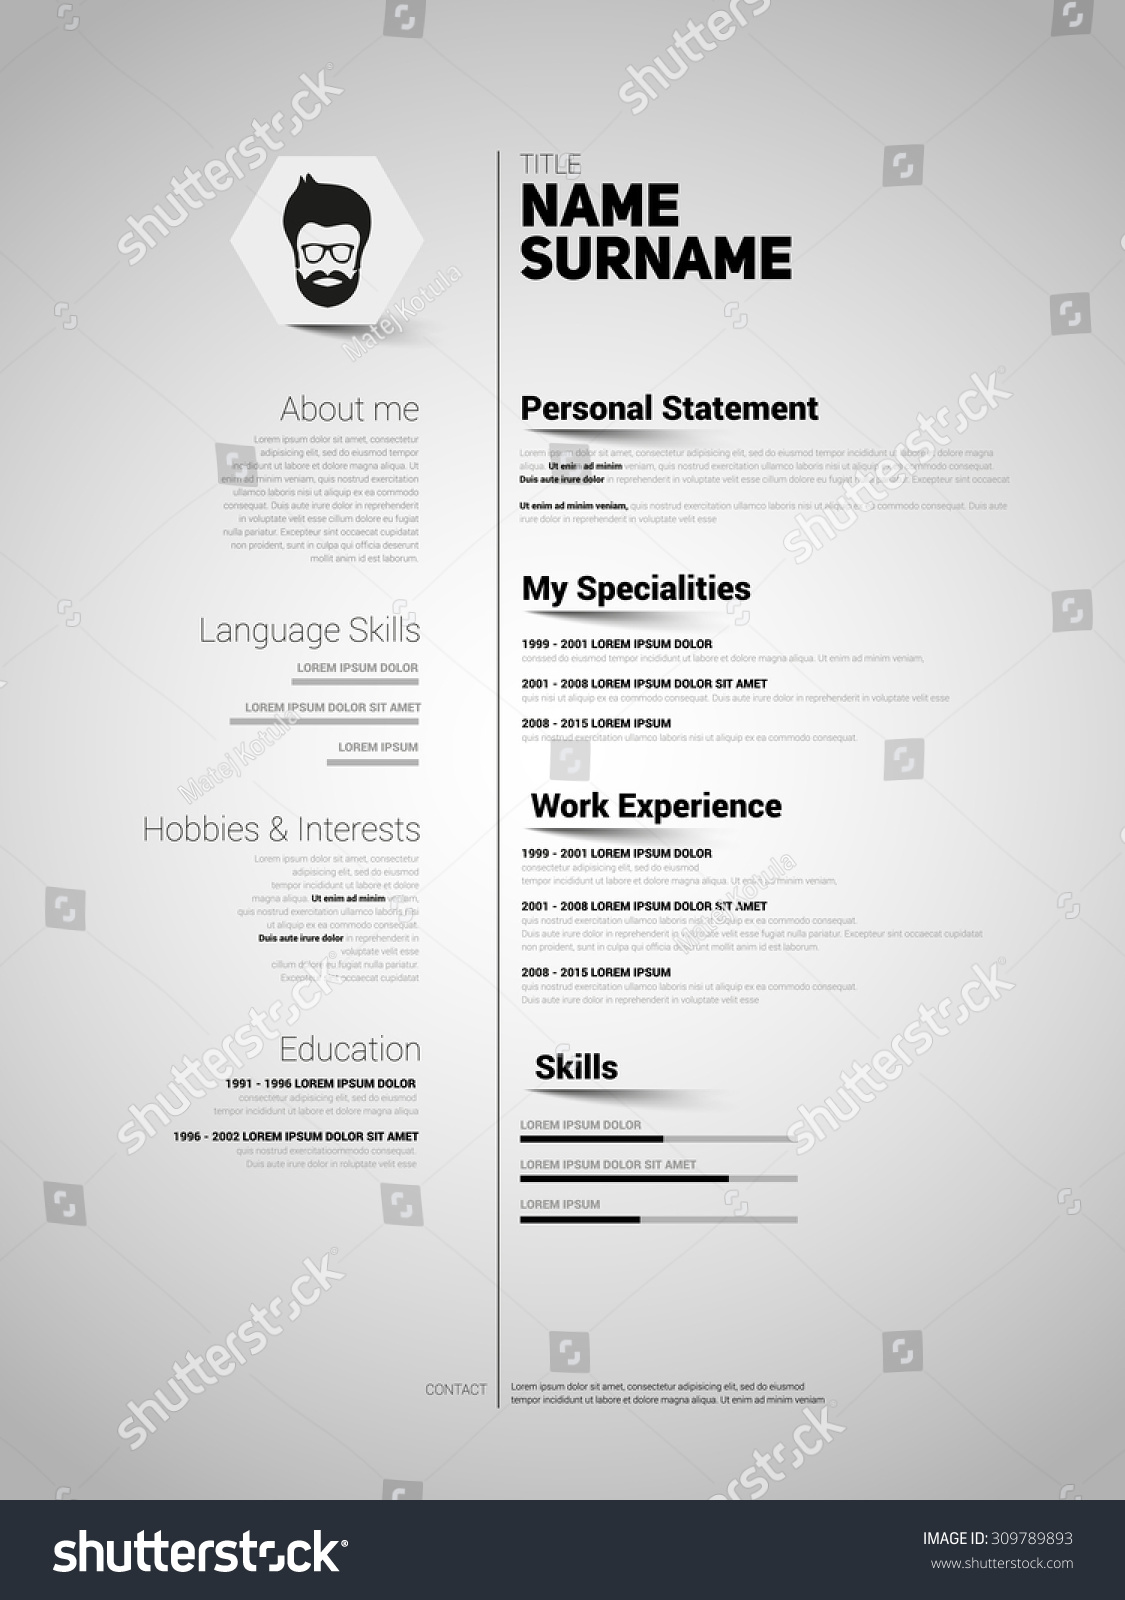 Minimalist CV Resume Template With Simple Design Vector